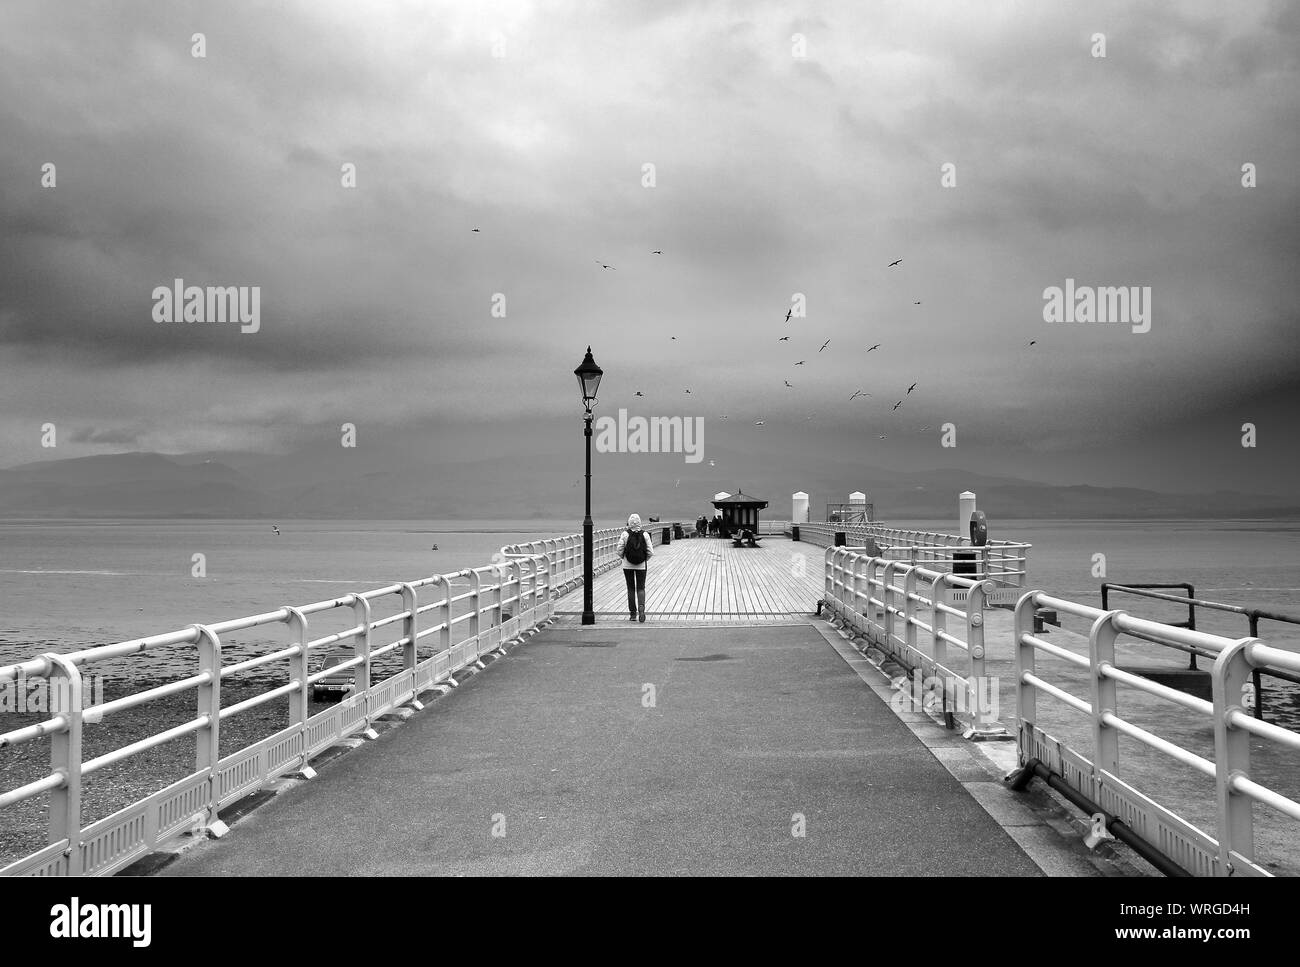 Beaumaris (Wales) in April. A pier on the sea, a street lamp, a person walking seen from behind, birds sensing the coming storm, dark clouds Stock Photo